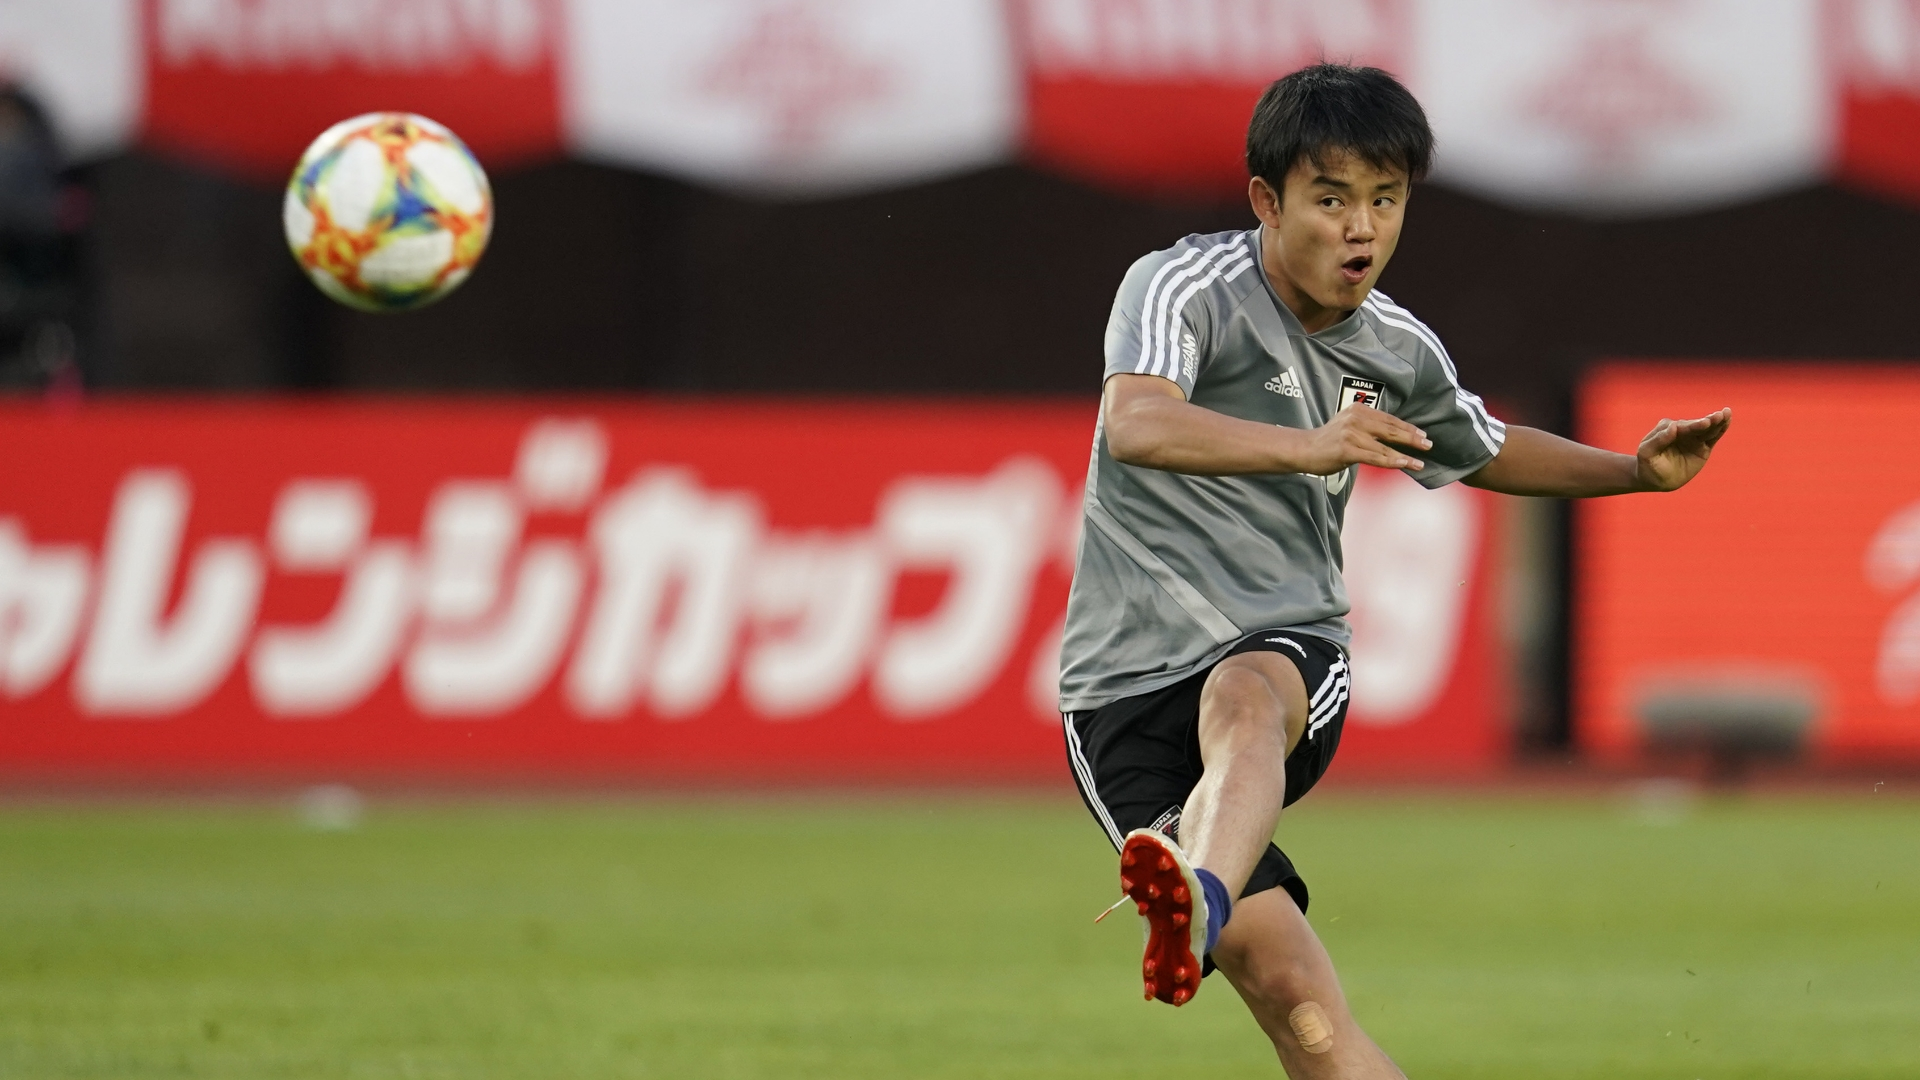 Real Madrid new boy Kubo proud of 'Japanese Messi' tag but aware he has much to prove